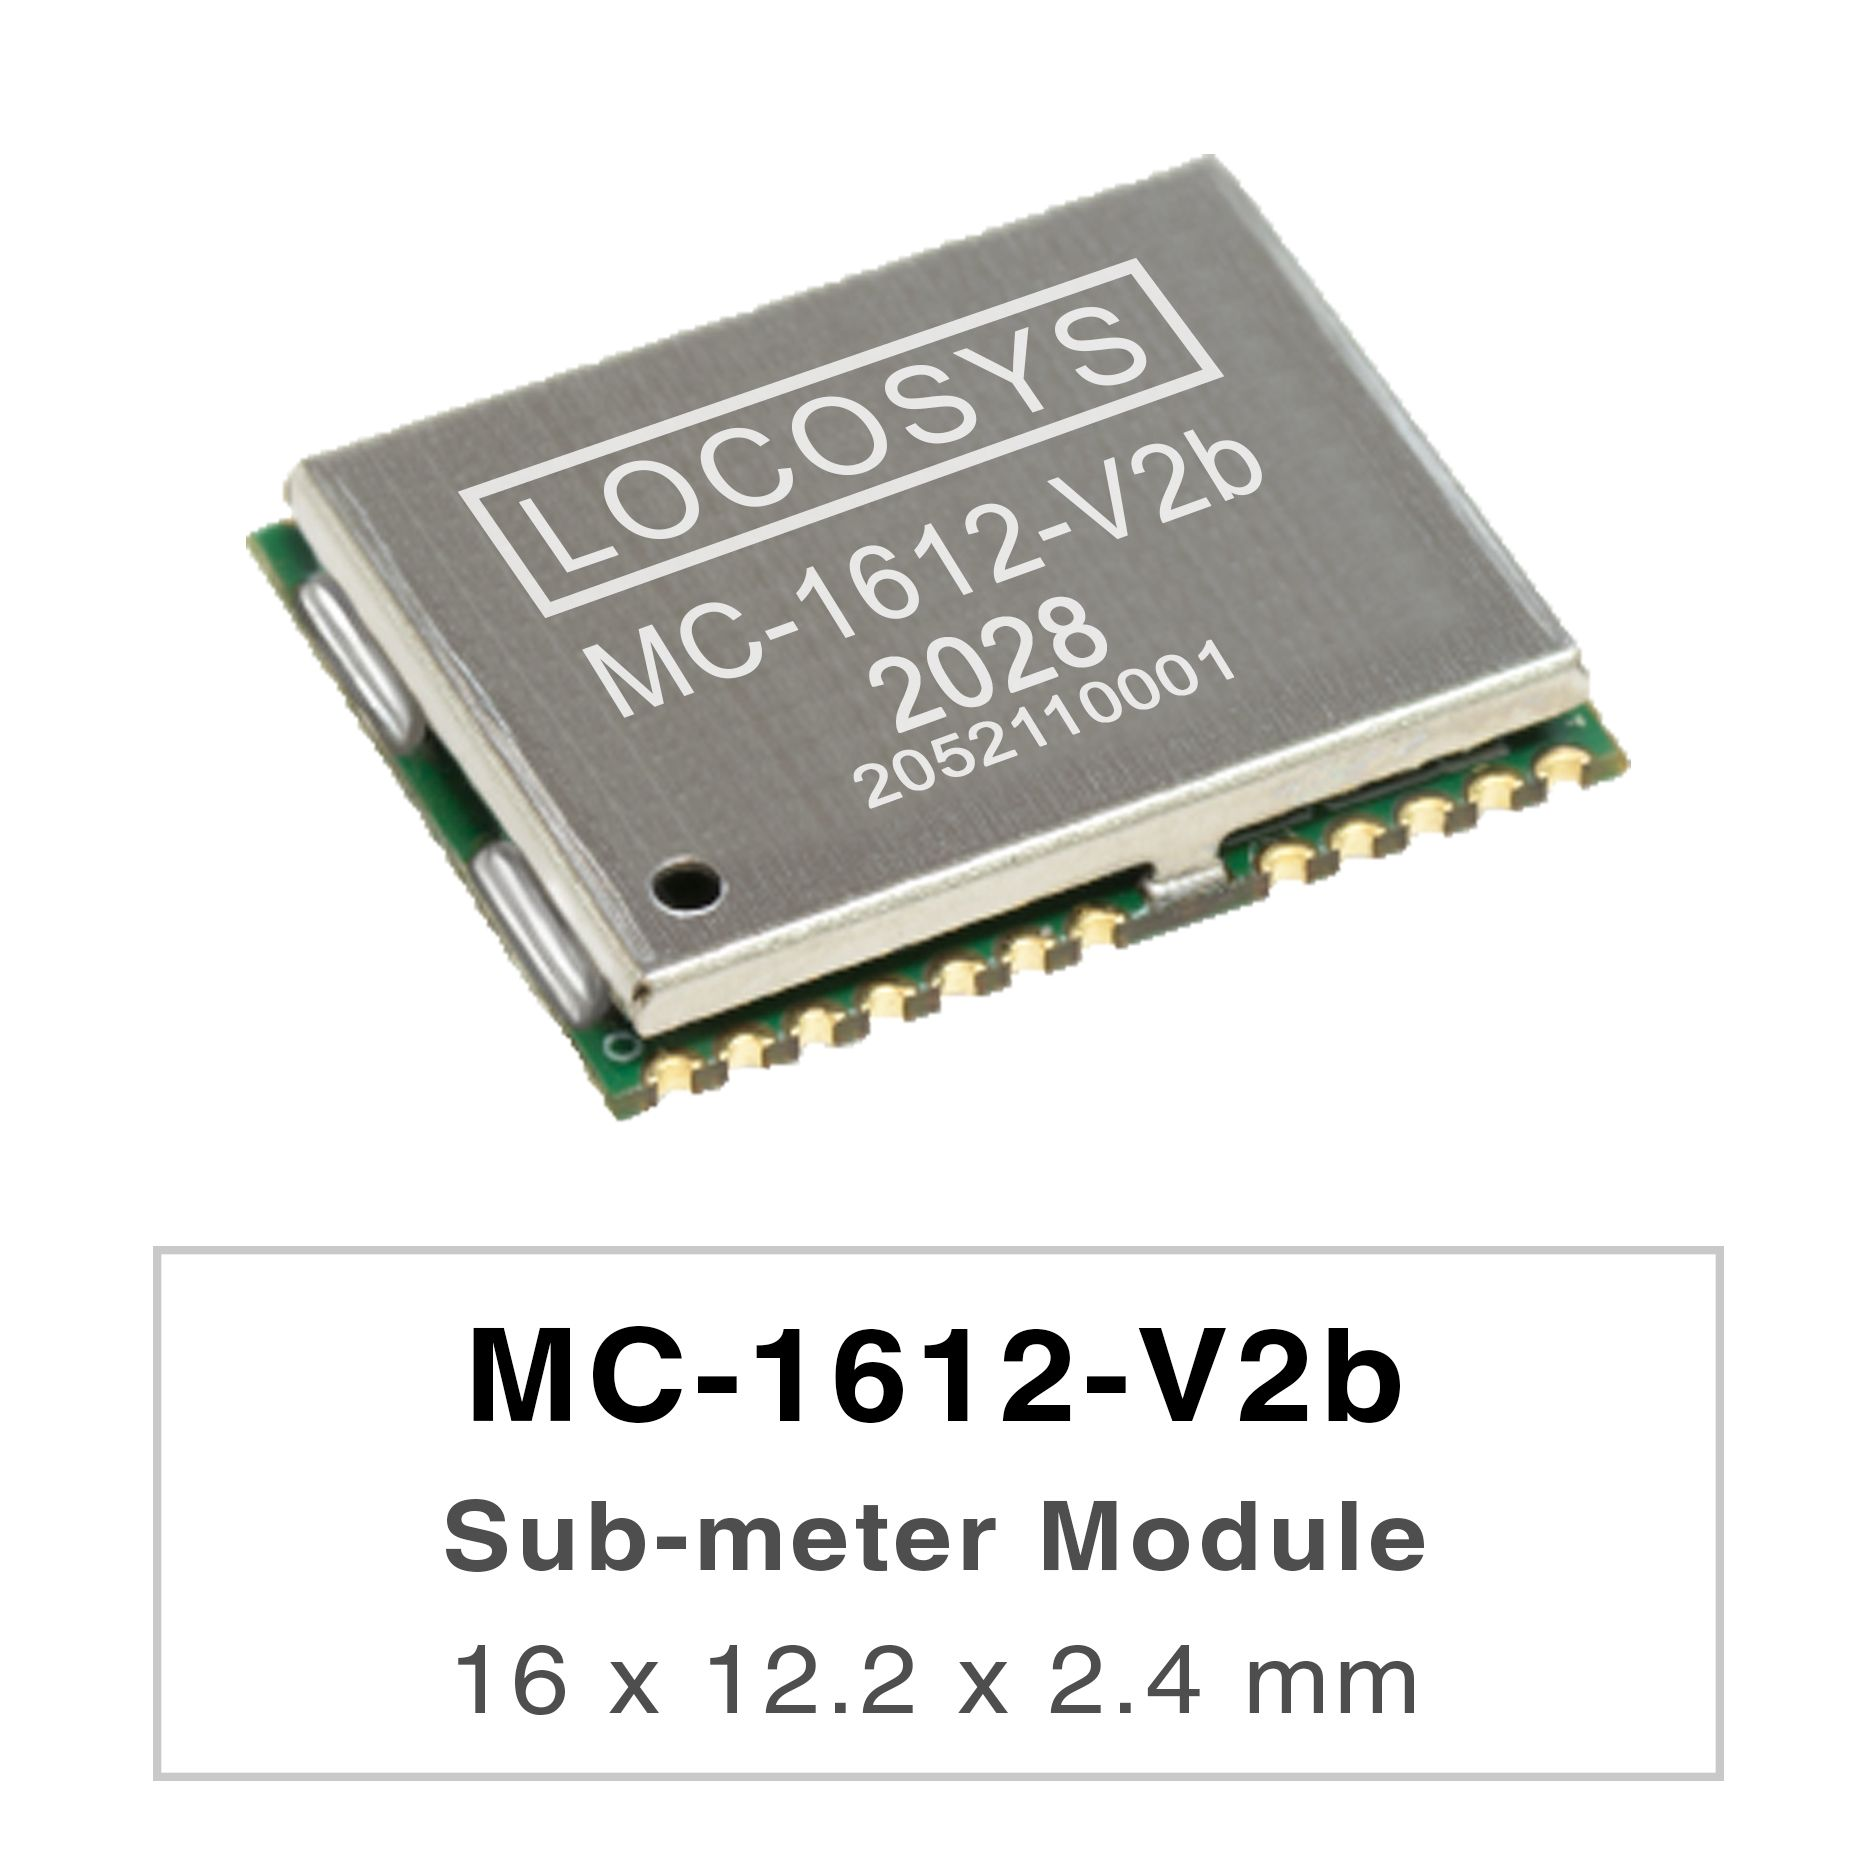 LOCOSYS MC-1612-Vxx series are high-performance dual-band GNSS positioning modules that are capable of tracking all global civil navigation systems. They adopt 12 nm process and integrate efficient power management architecture to perform low power and high sensitivity.